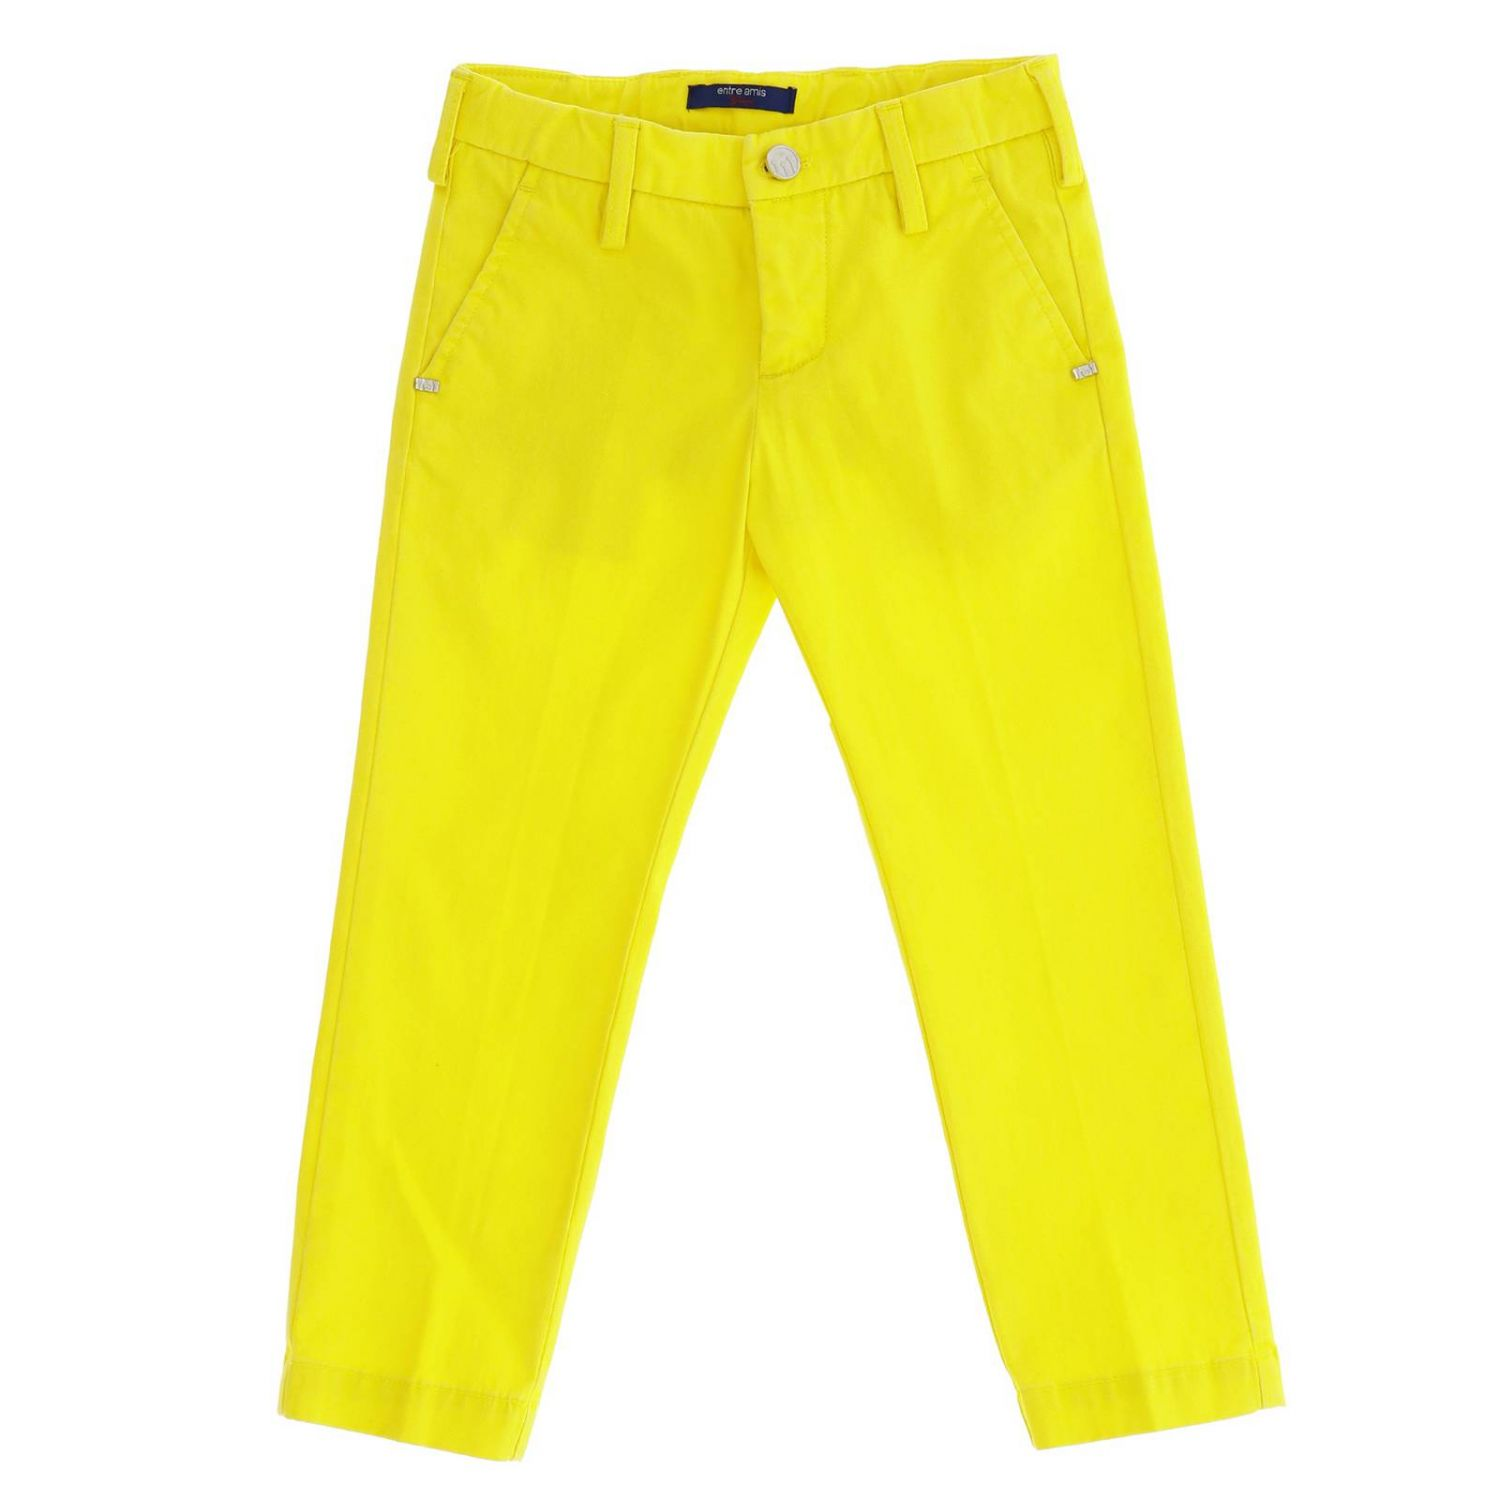 Trousers kids Entre Amis yellow 1